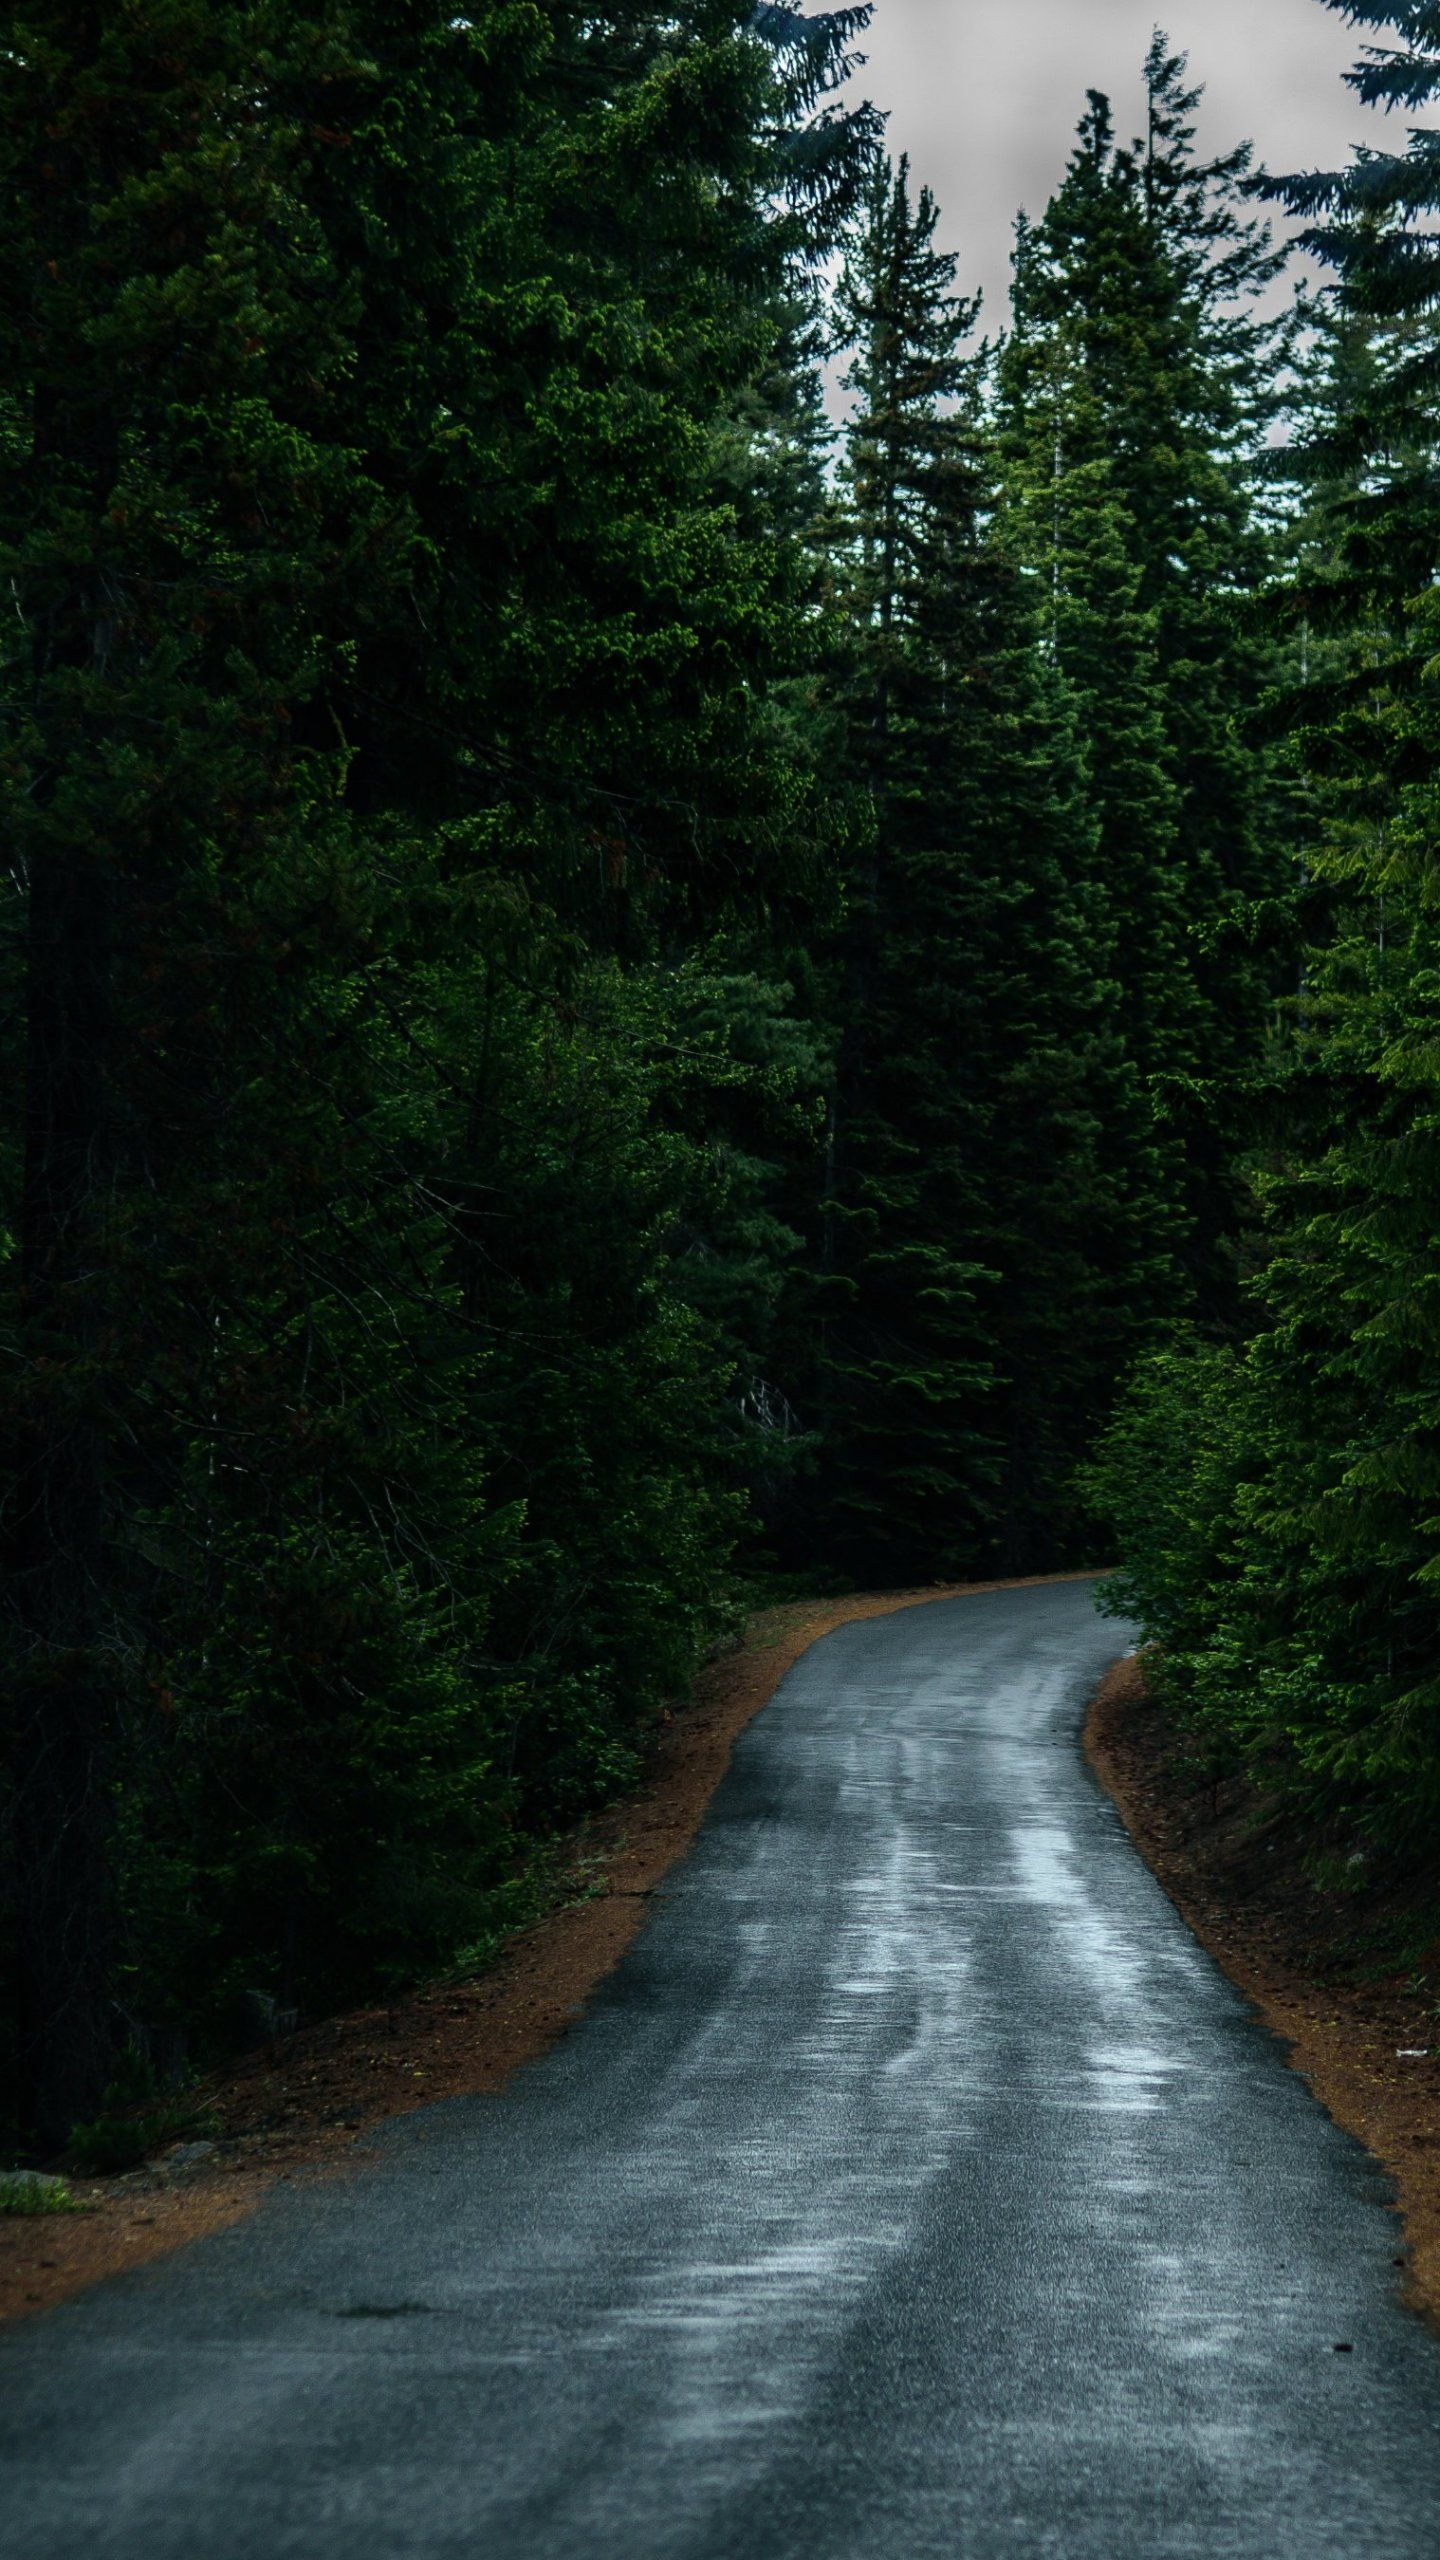 Road Through Forest Wallpaper iPhone, Android & Desktop